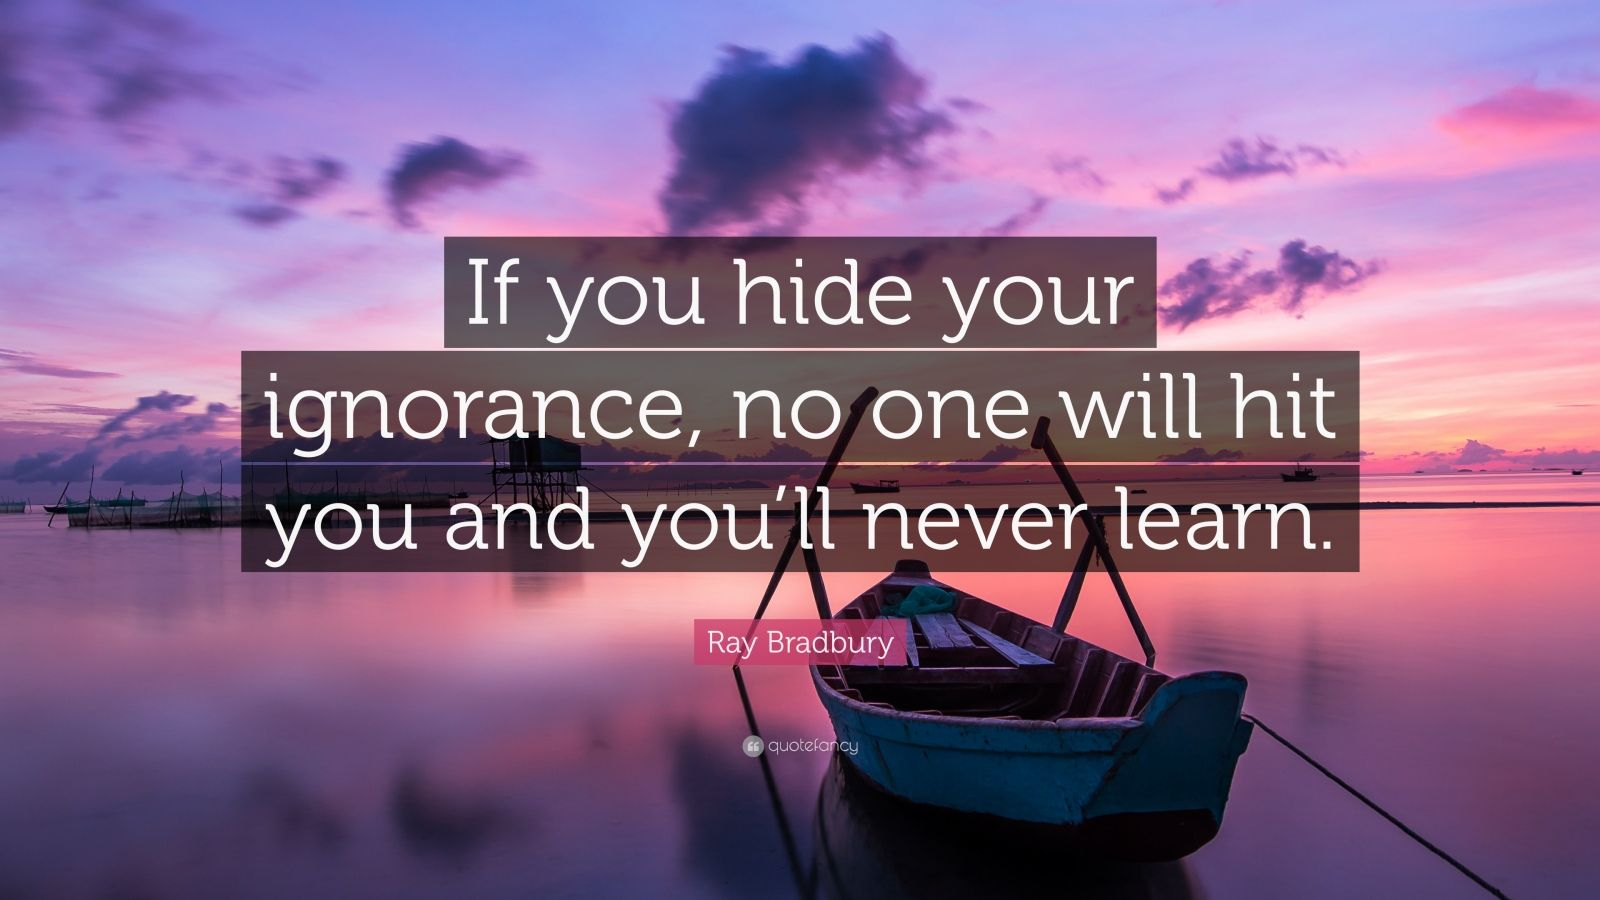 """Ray Bradbury Quote: """"If you hide your ignorance, no one will hit you and you'll never learn."""""""